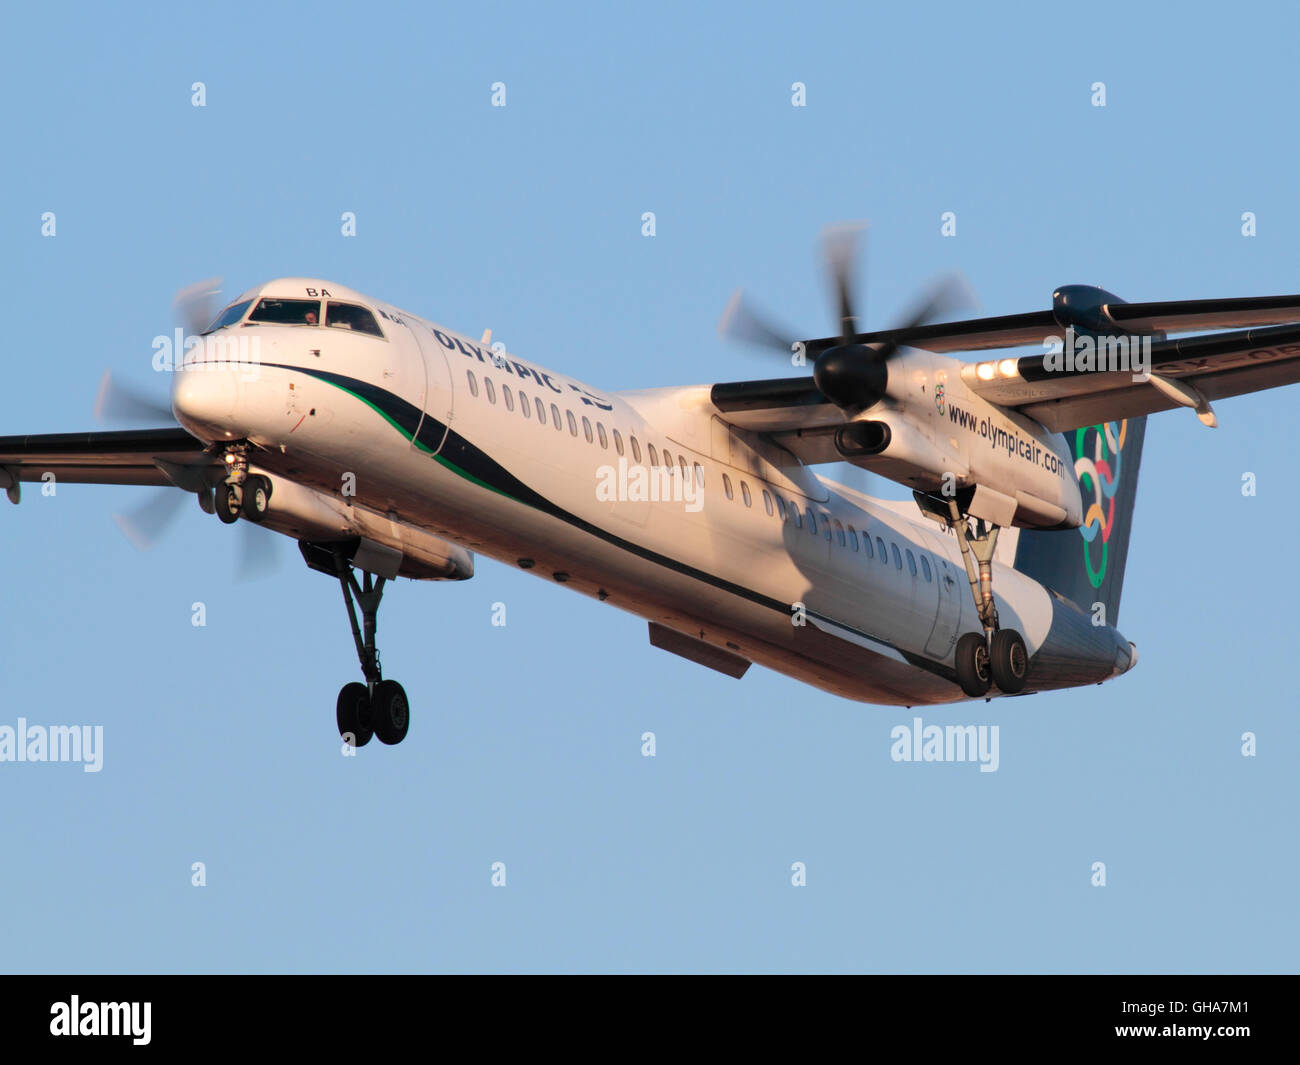 Bombardier Dash 8-Q400 turboprop plane belonging to Olympic Air, a regional subsidiary of Aegean Airlines, shown - Stock Image